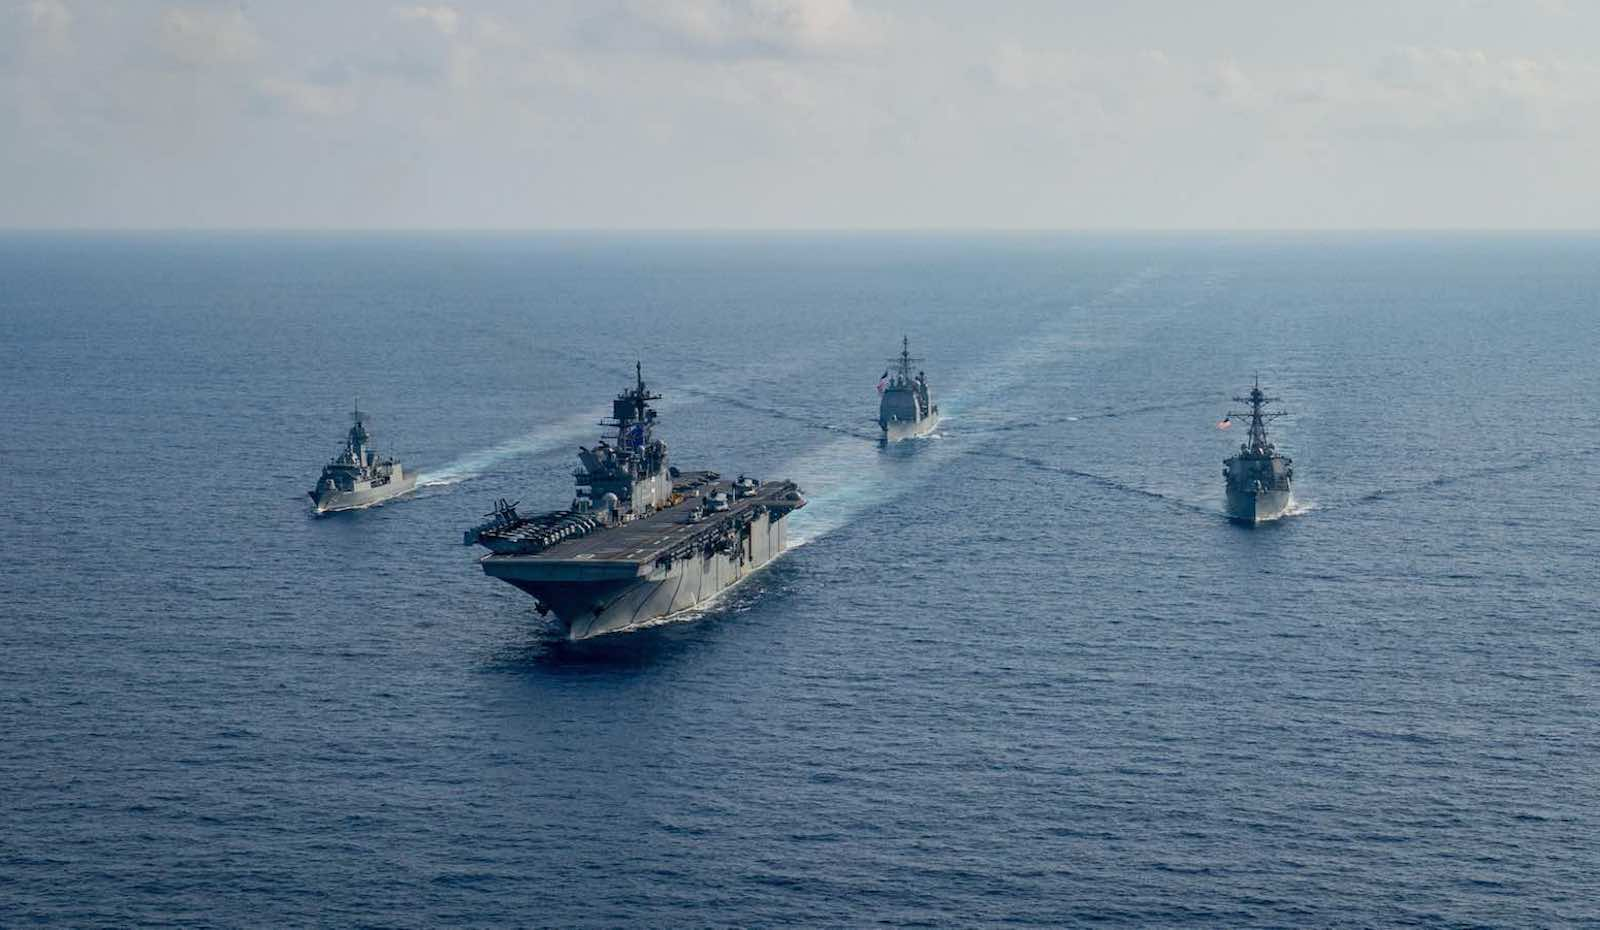 Joint Australian-US naval manoeuvres in the South China Sea, 23 April 2020 (Department of Defence)